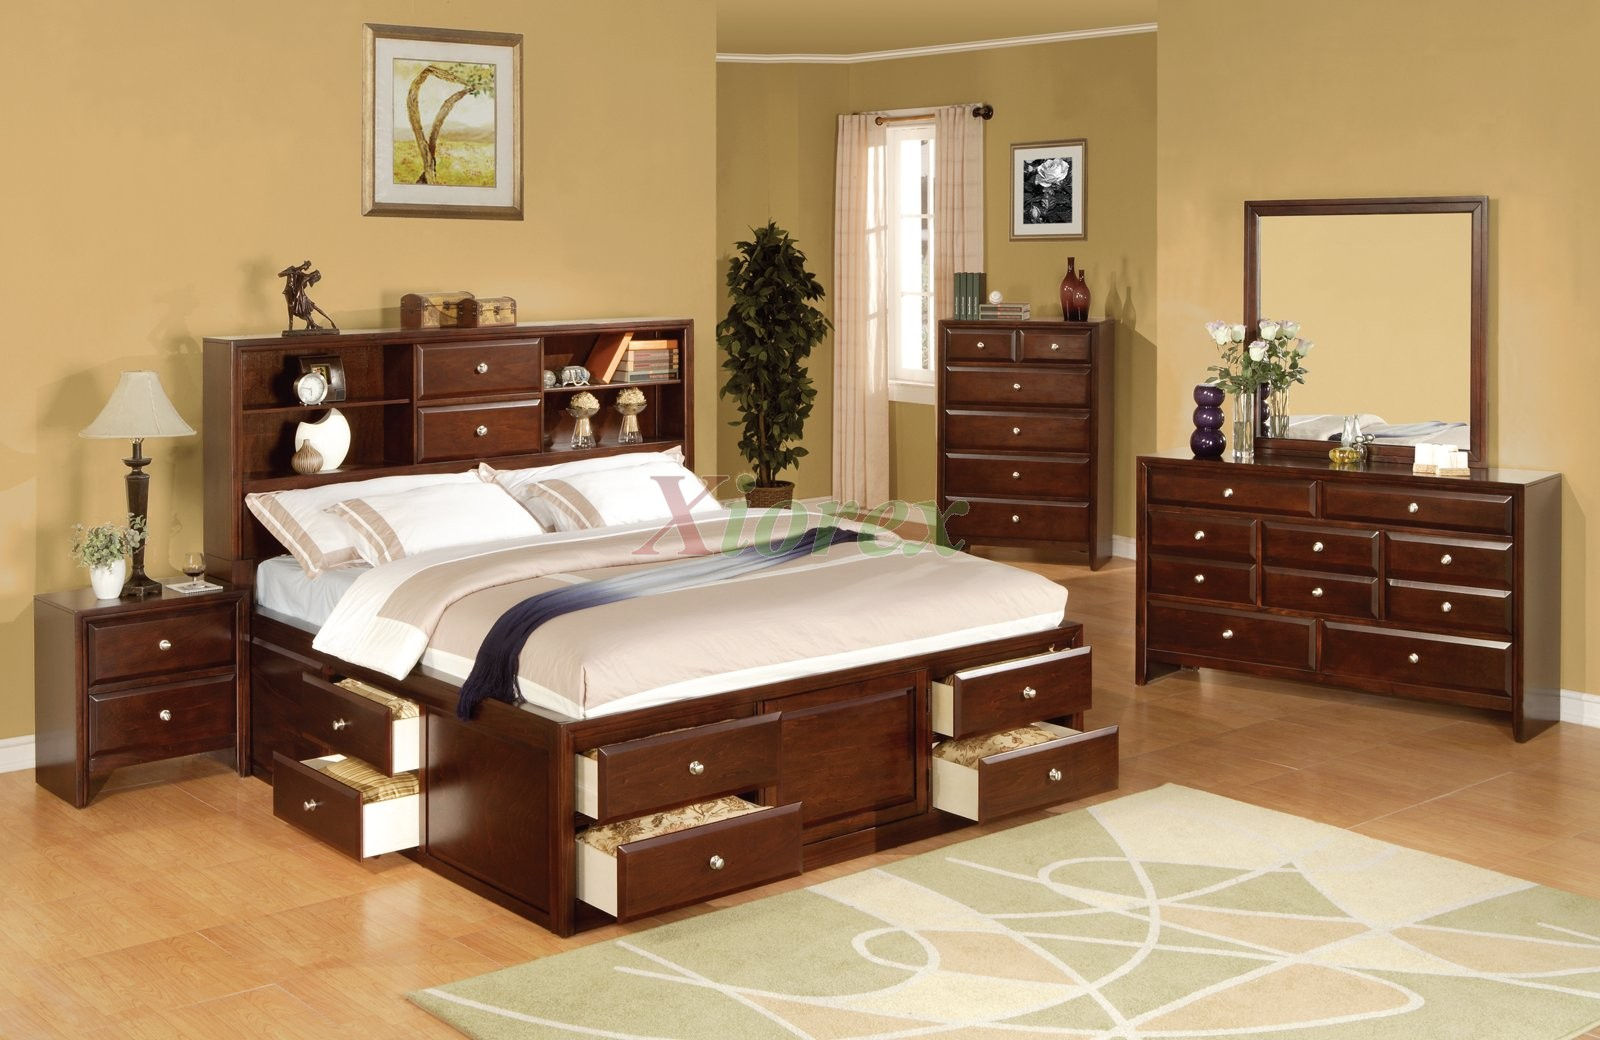 Bedroom furniture storage - Bookcase And Storage Bedroom Furniture Set 137 Xiorex Not Available In The Us